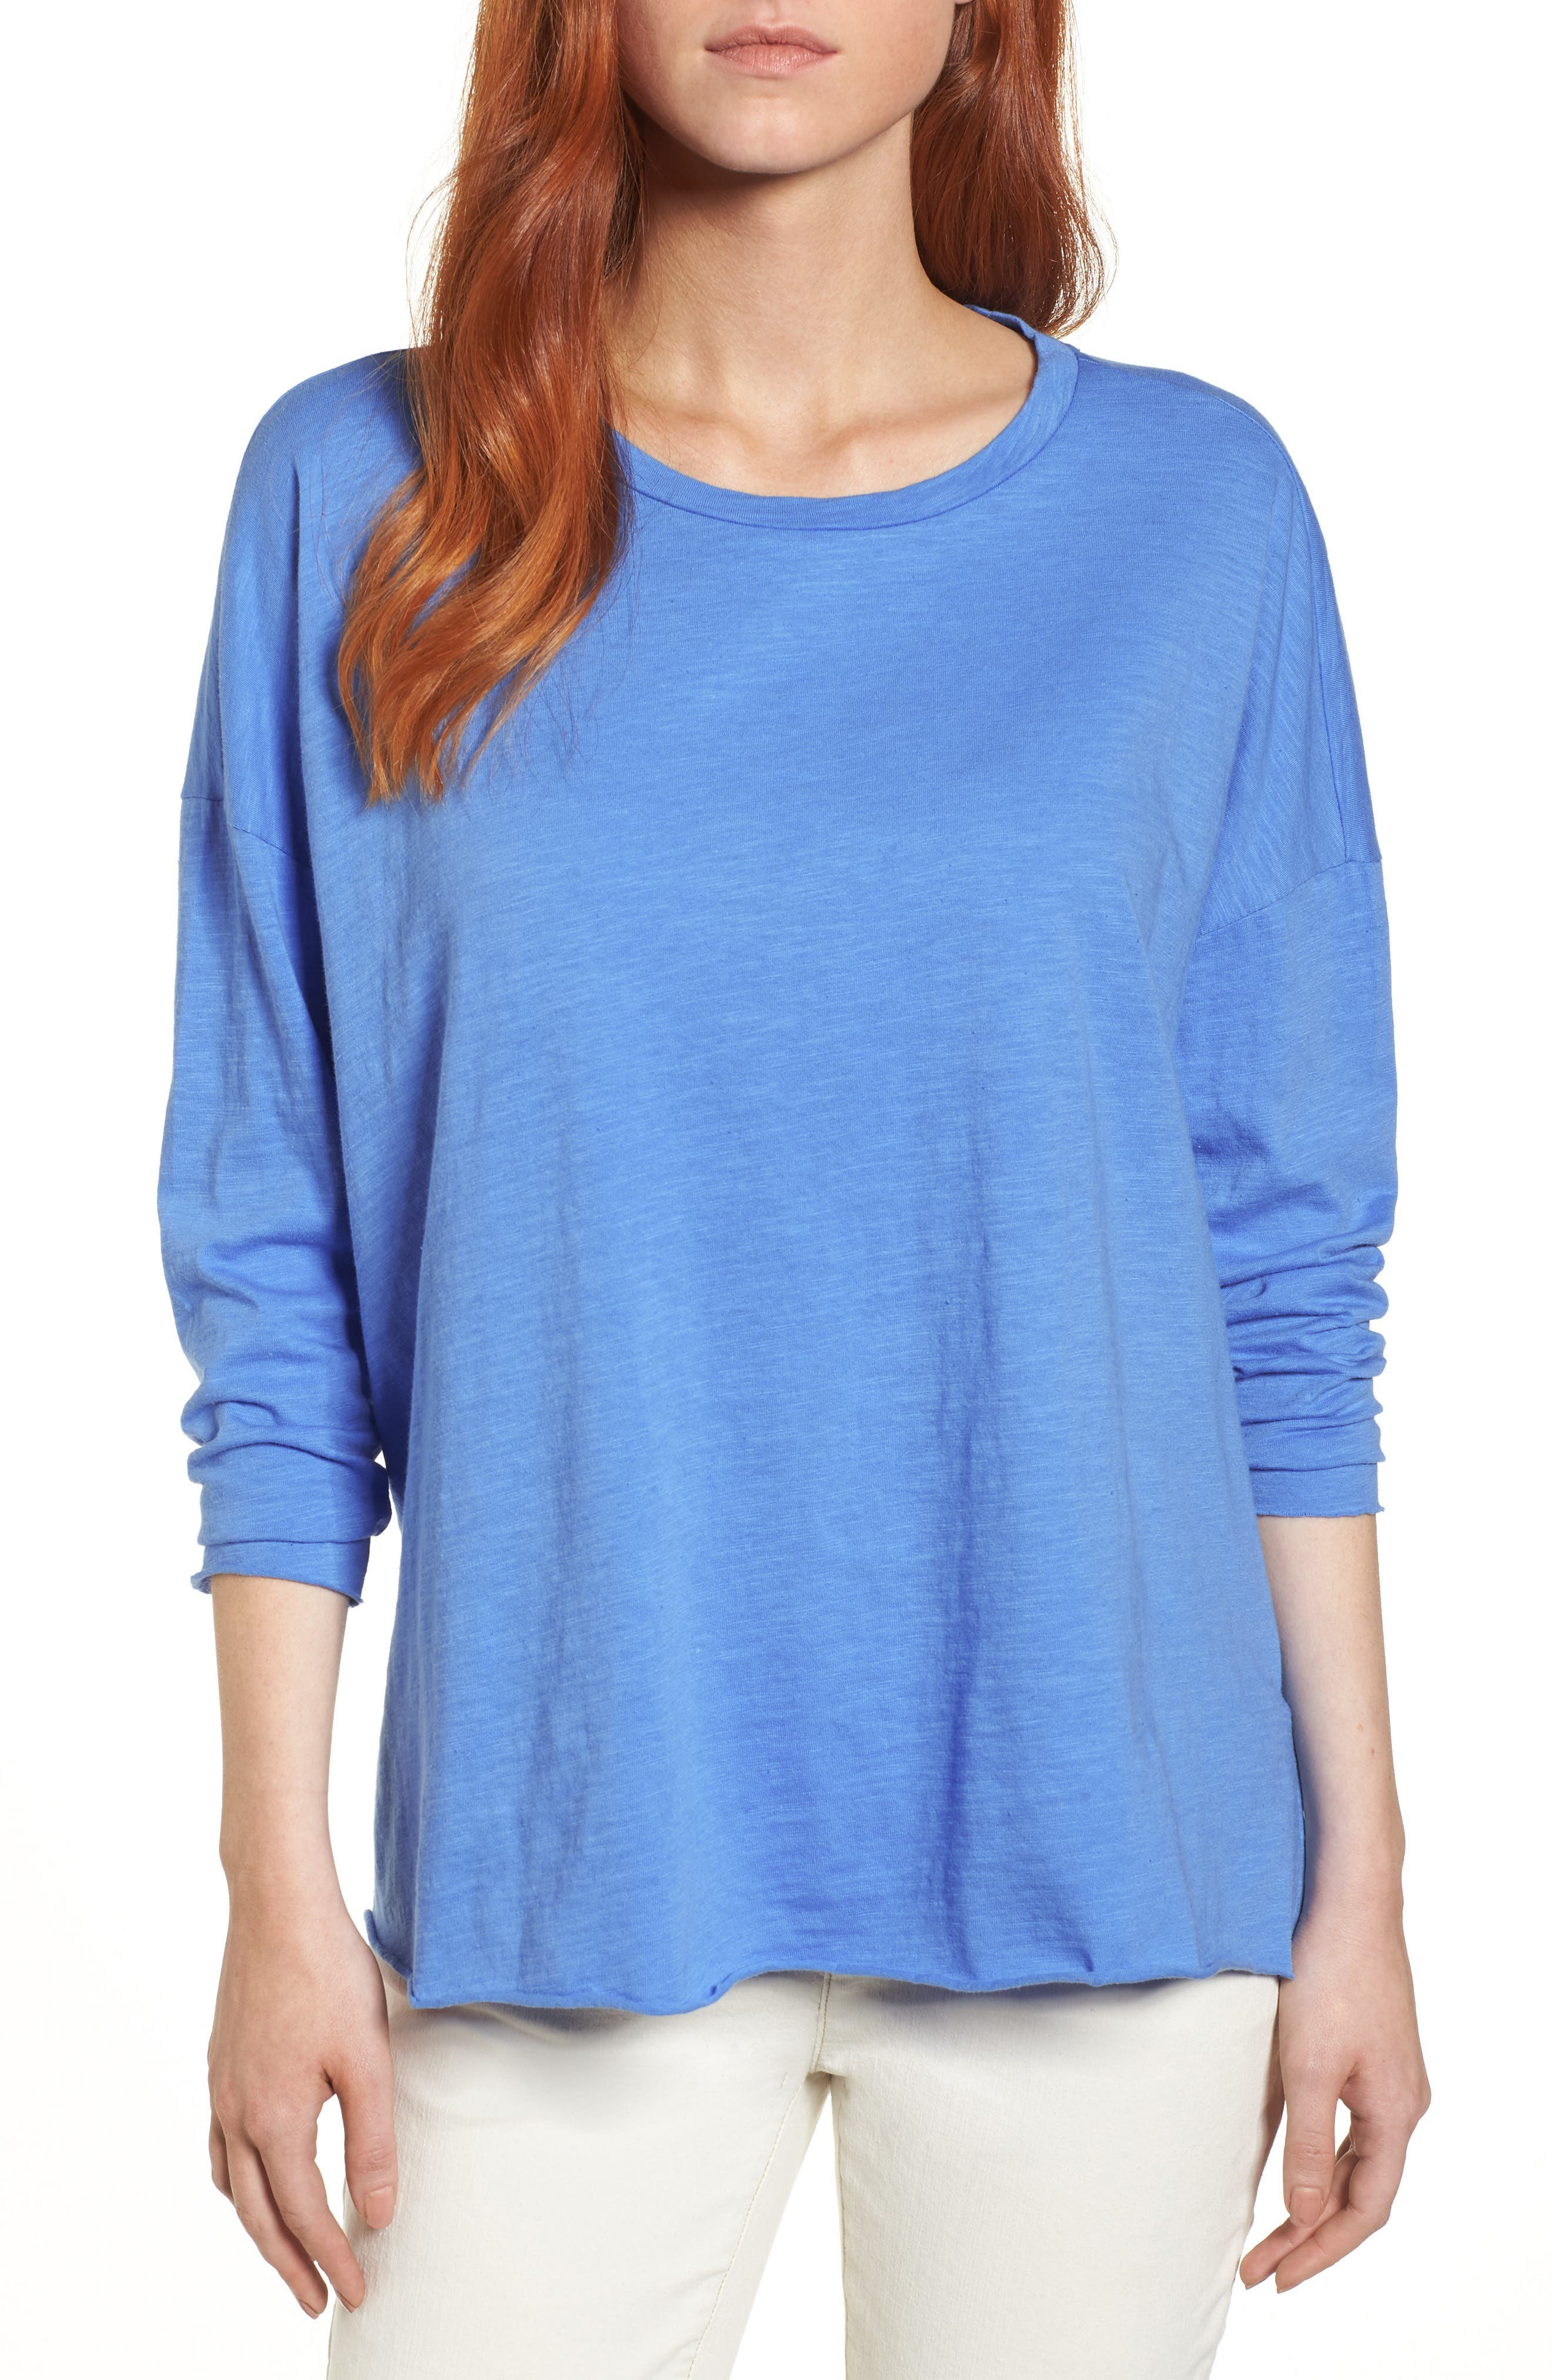 Organic Cotton Knit Top,                         Main,                         color, Blue Bell